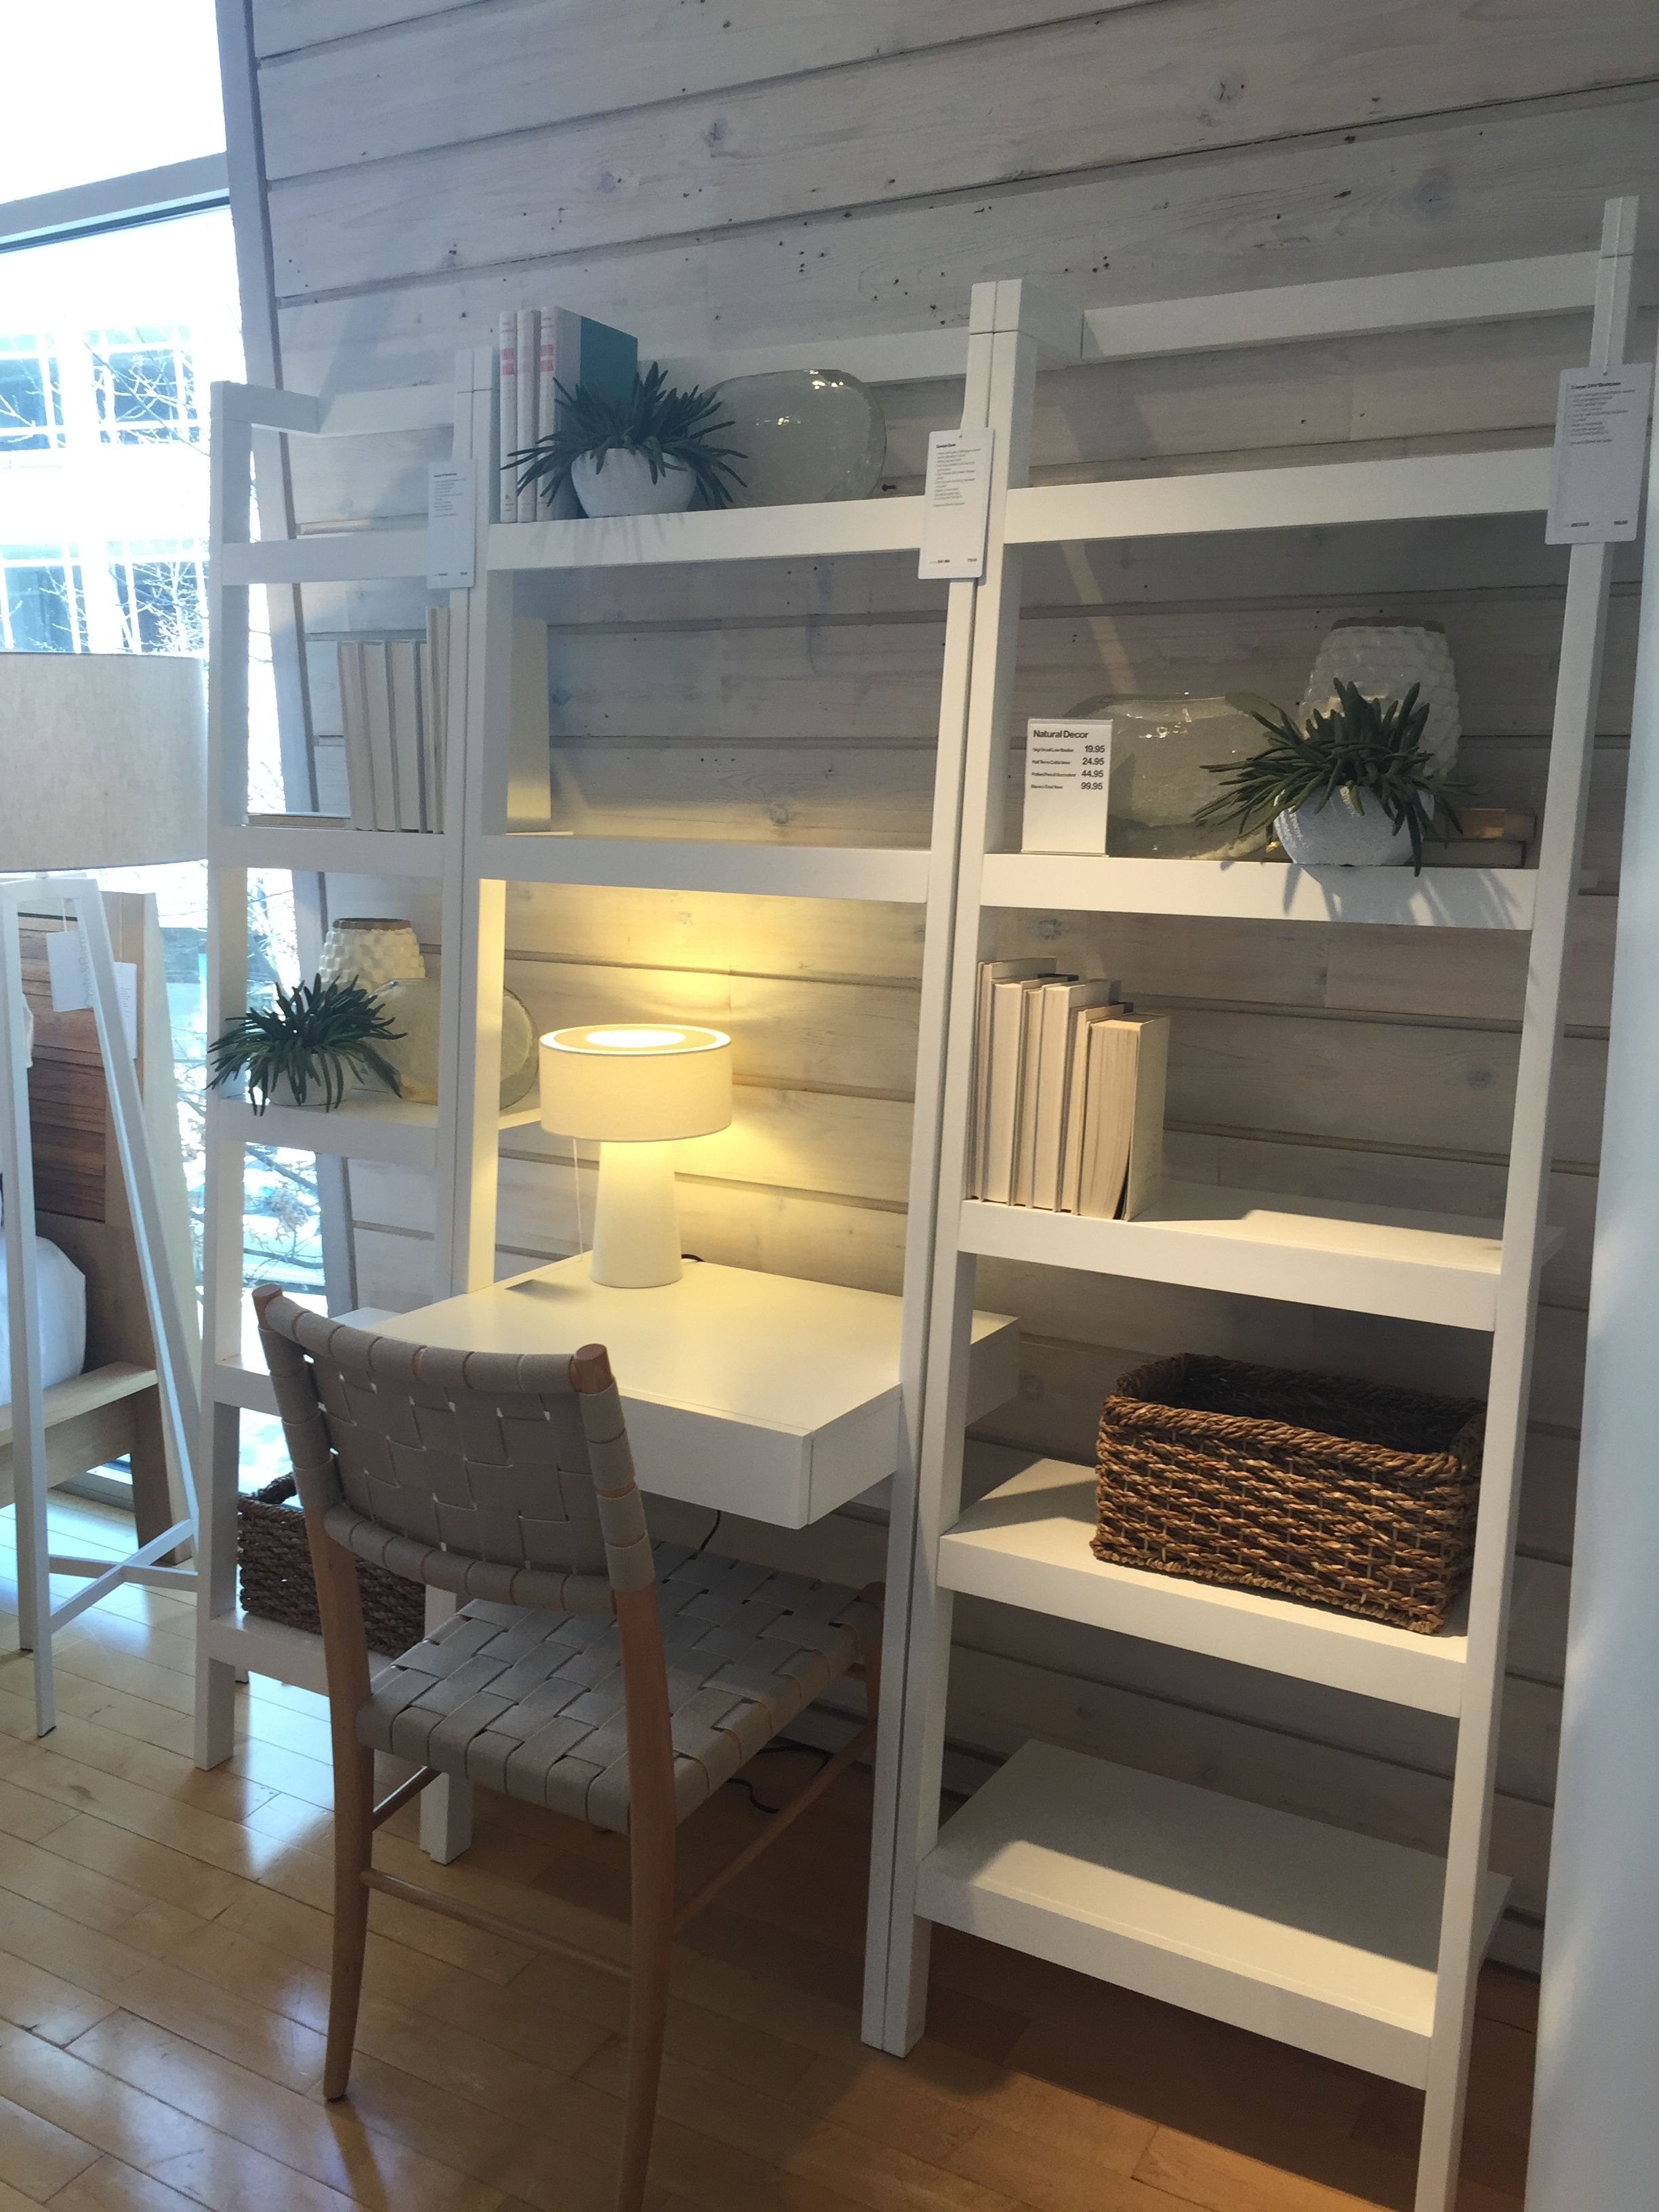 Crate And Barrel Sawyer Desk 2015 Crate And Barrel Desk Small Space Living Home Decor